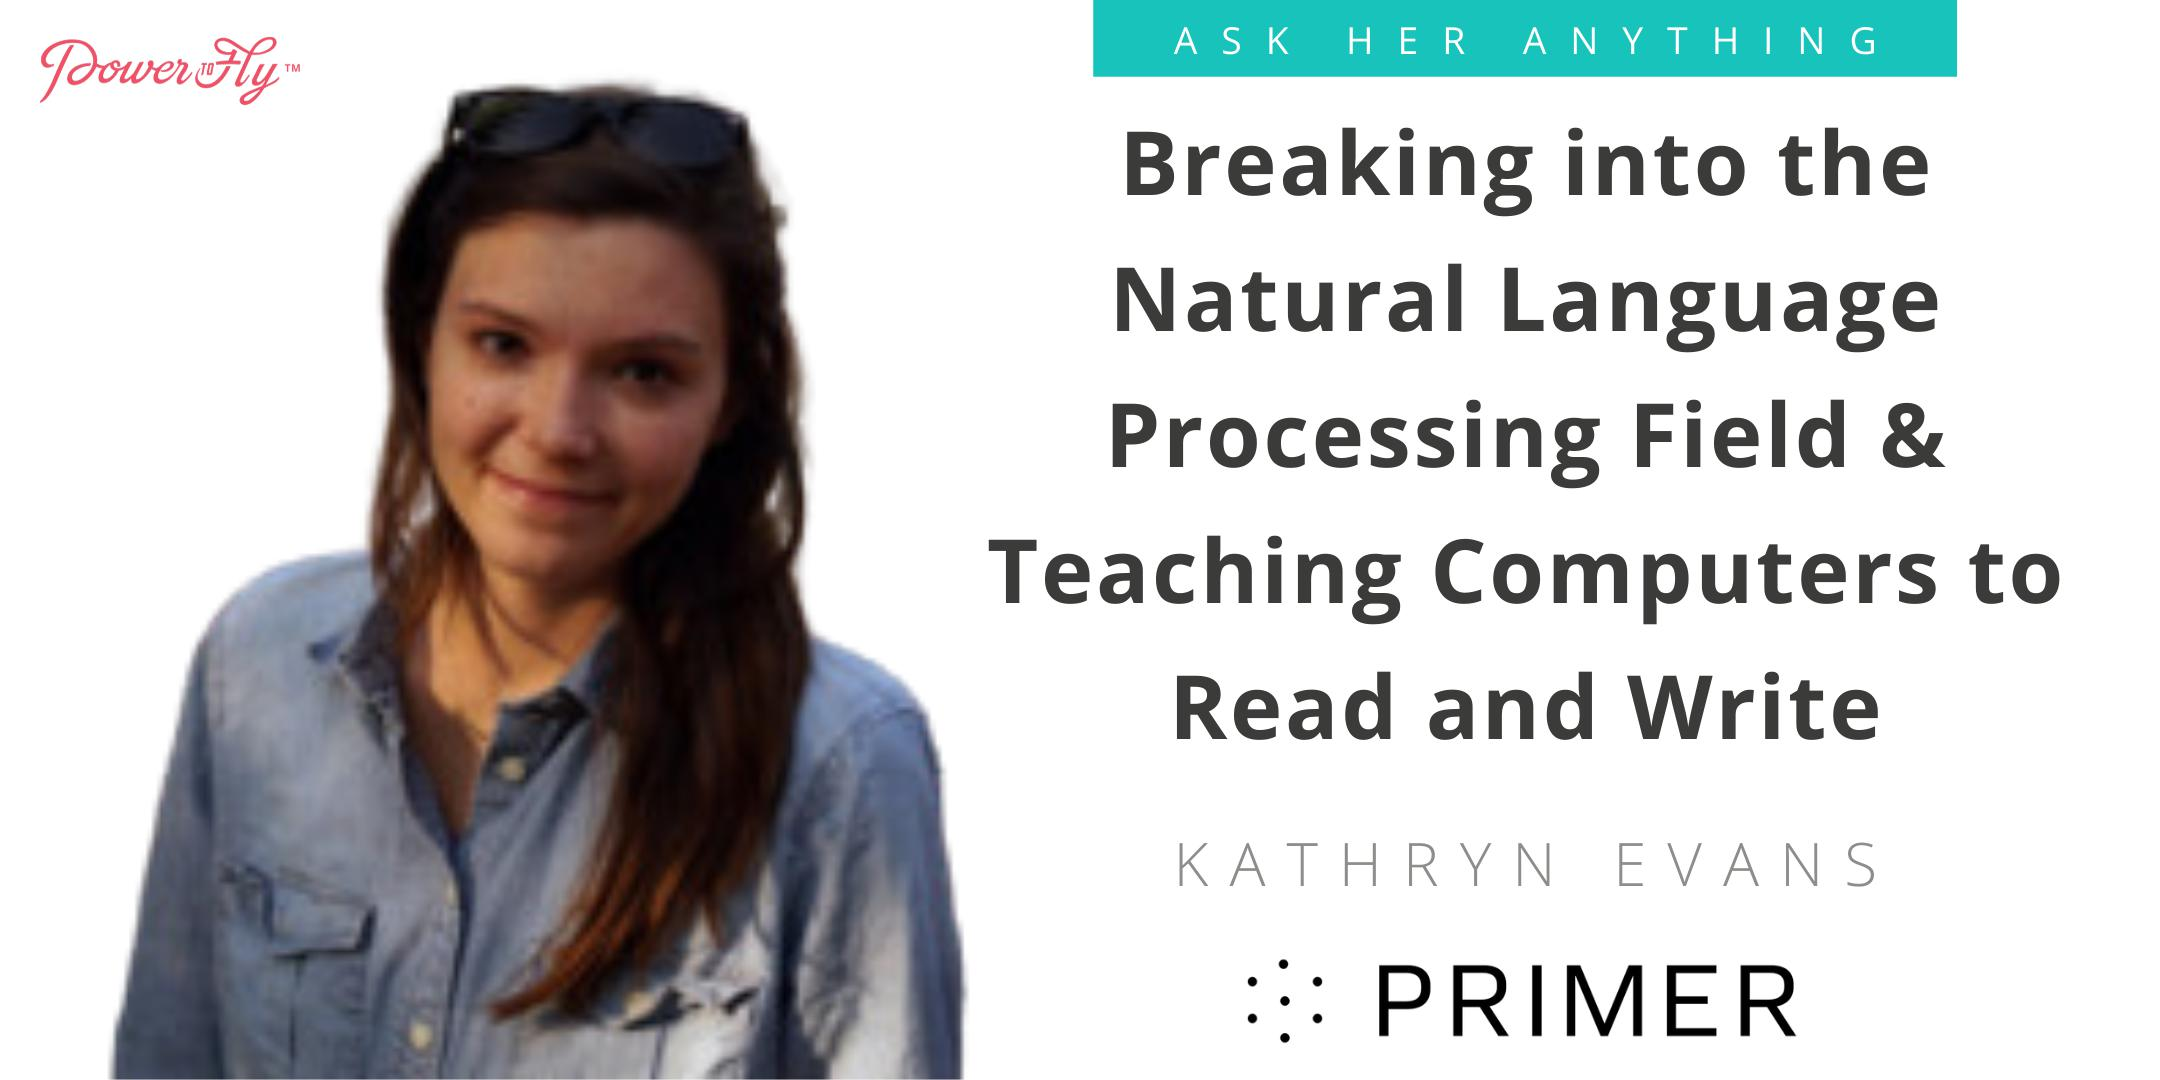 Breaking into the Natural Language Processing Field & Teaching Computers to Read and Write